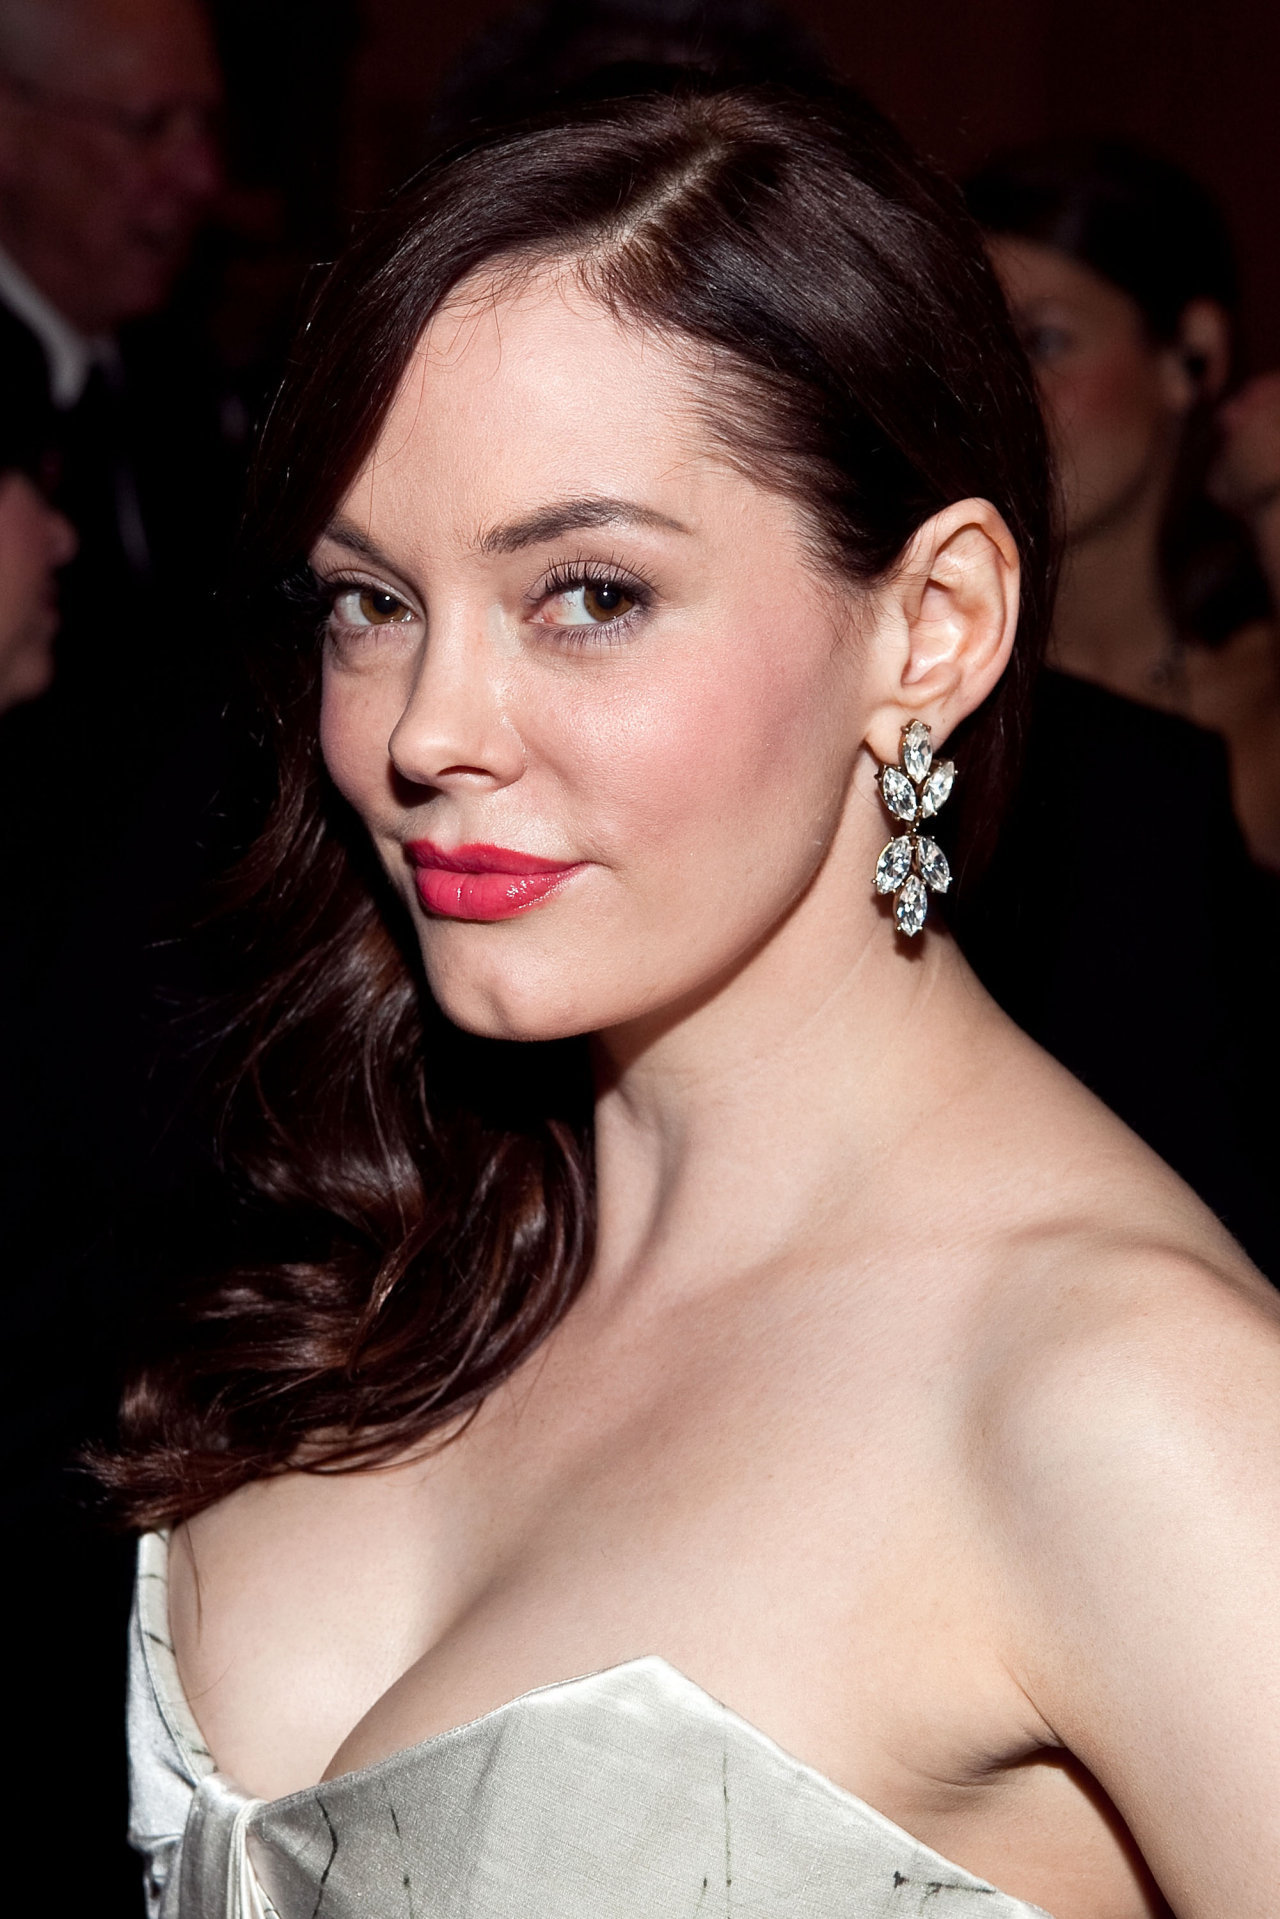 Rose Mcgowan Net Worth